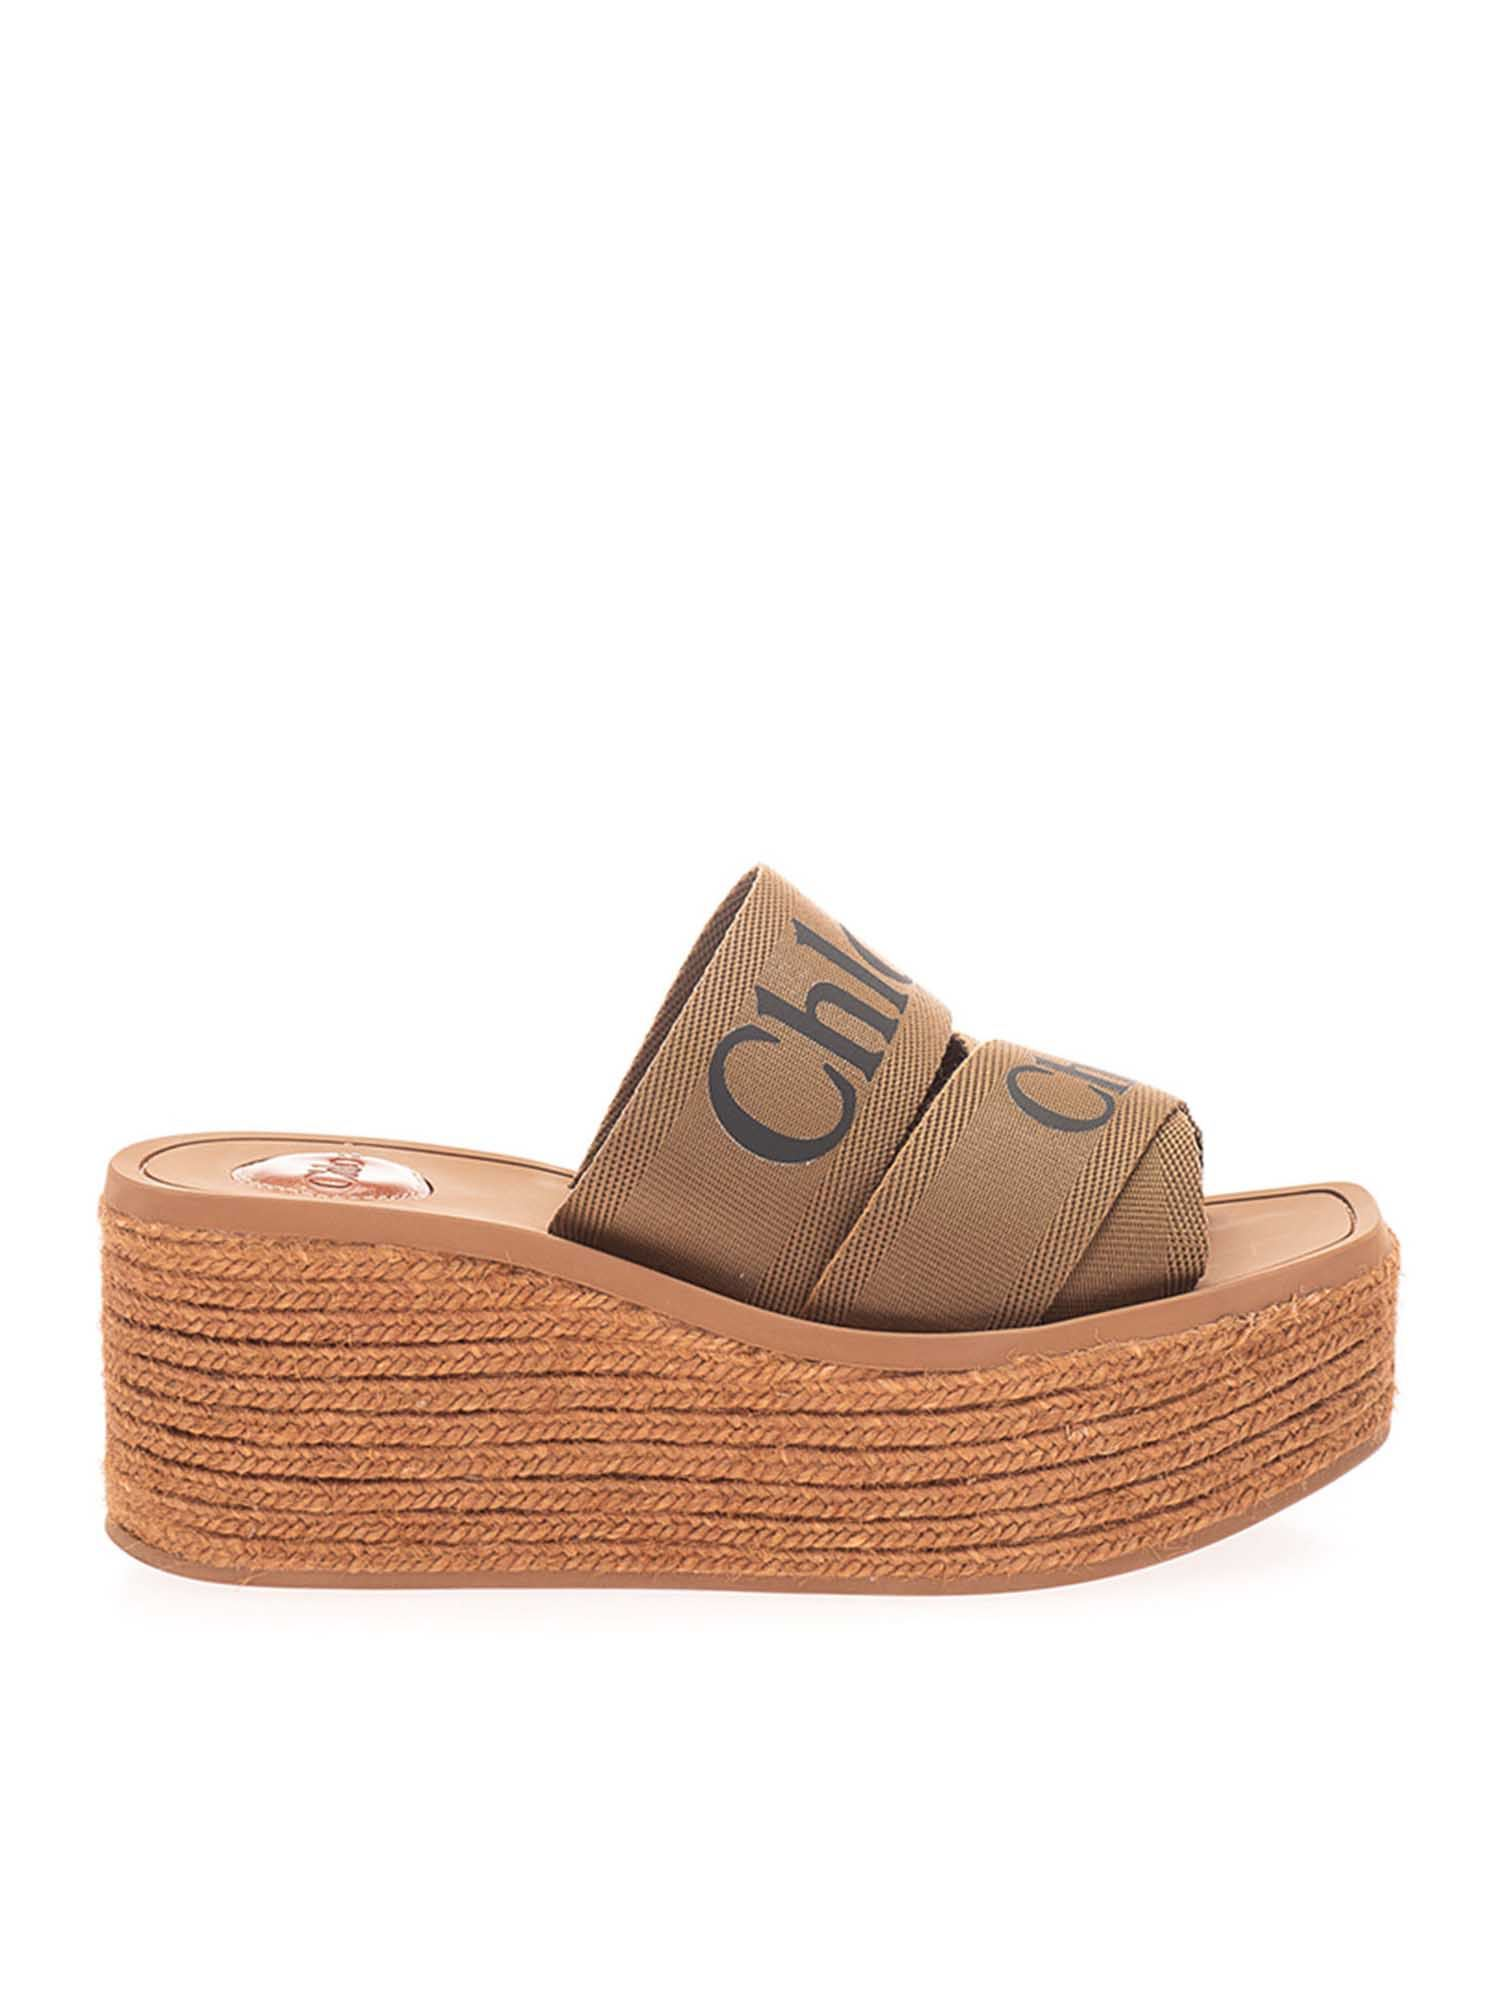 Chloé Canvases WEDGE WOODY ESPADRILLES IN GROVE BROWN